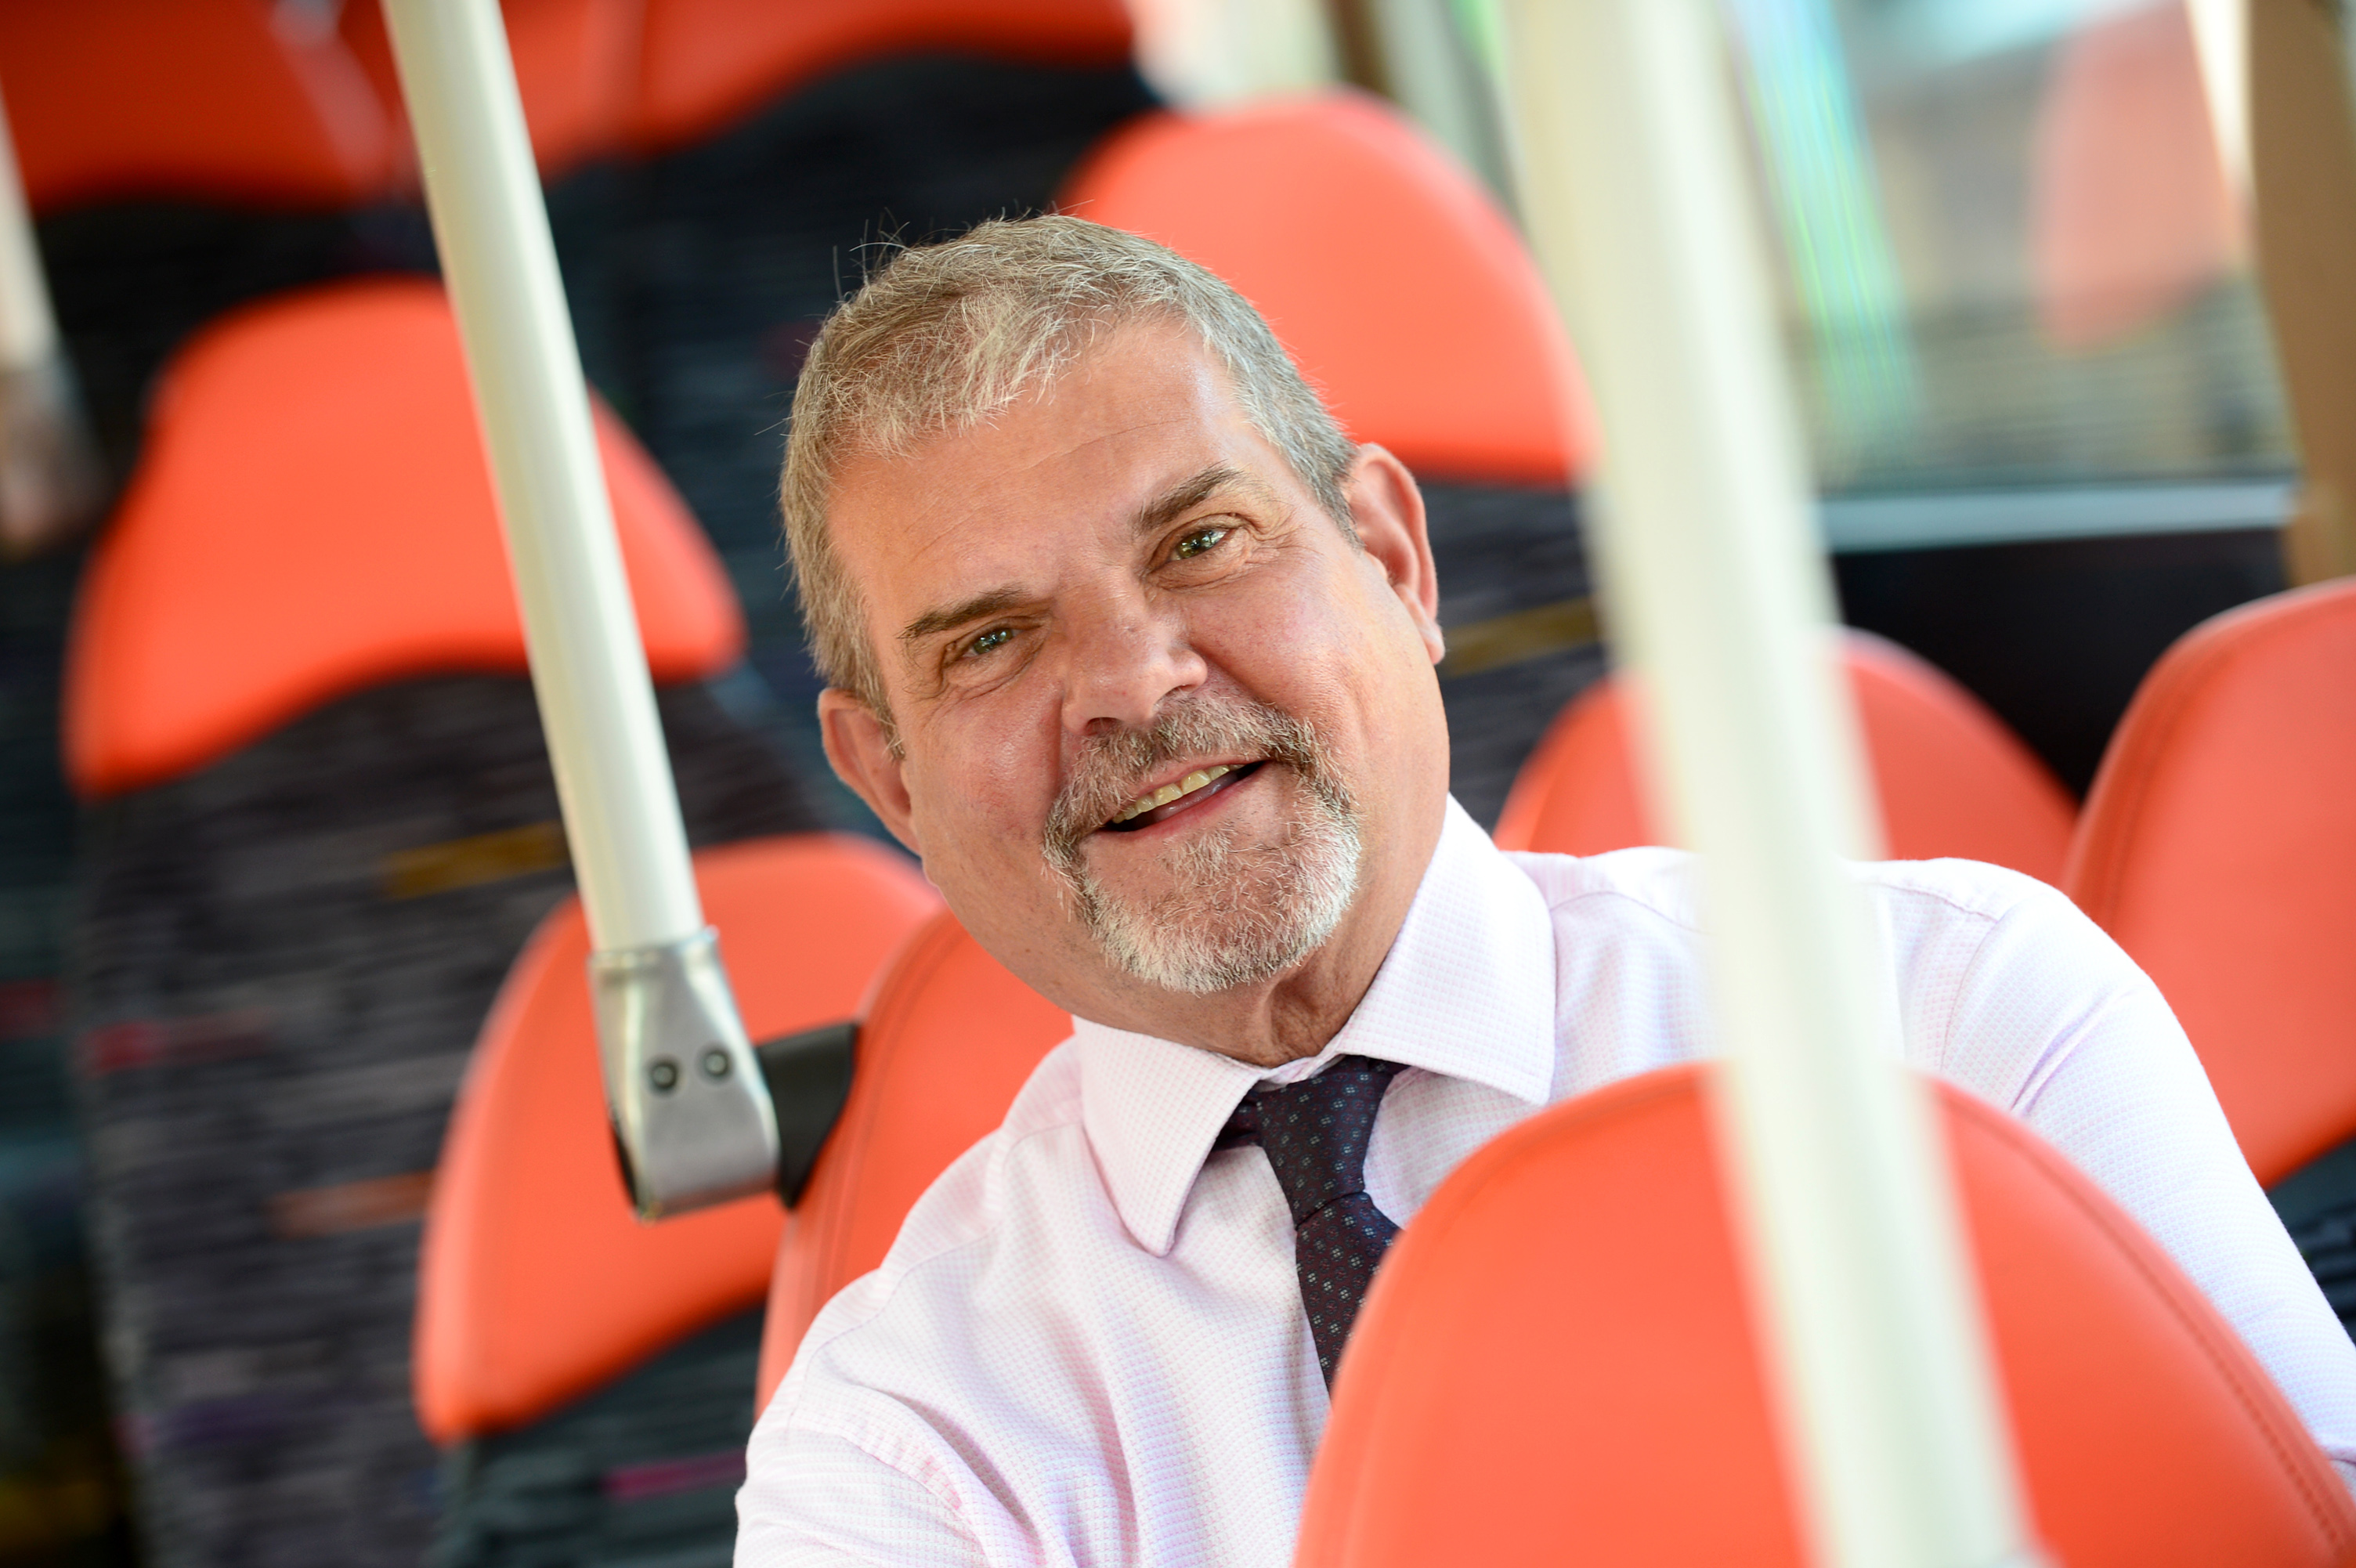 Trentbarton welcomes new National Bus Strategy